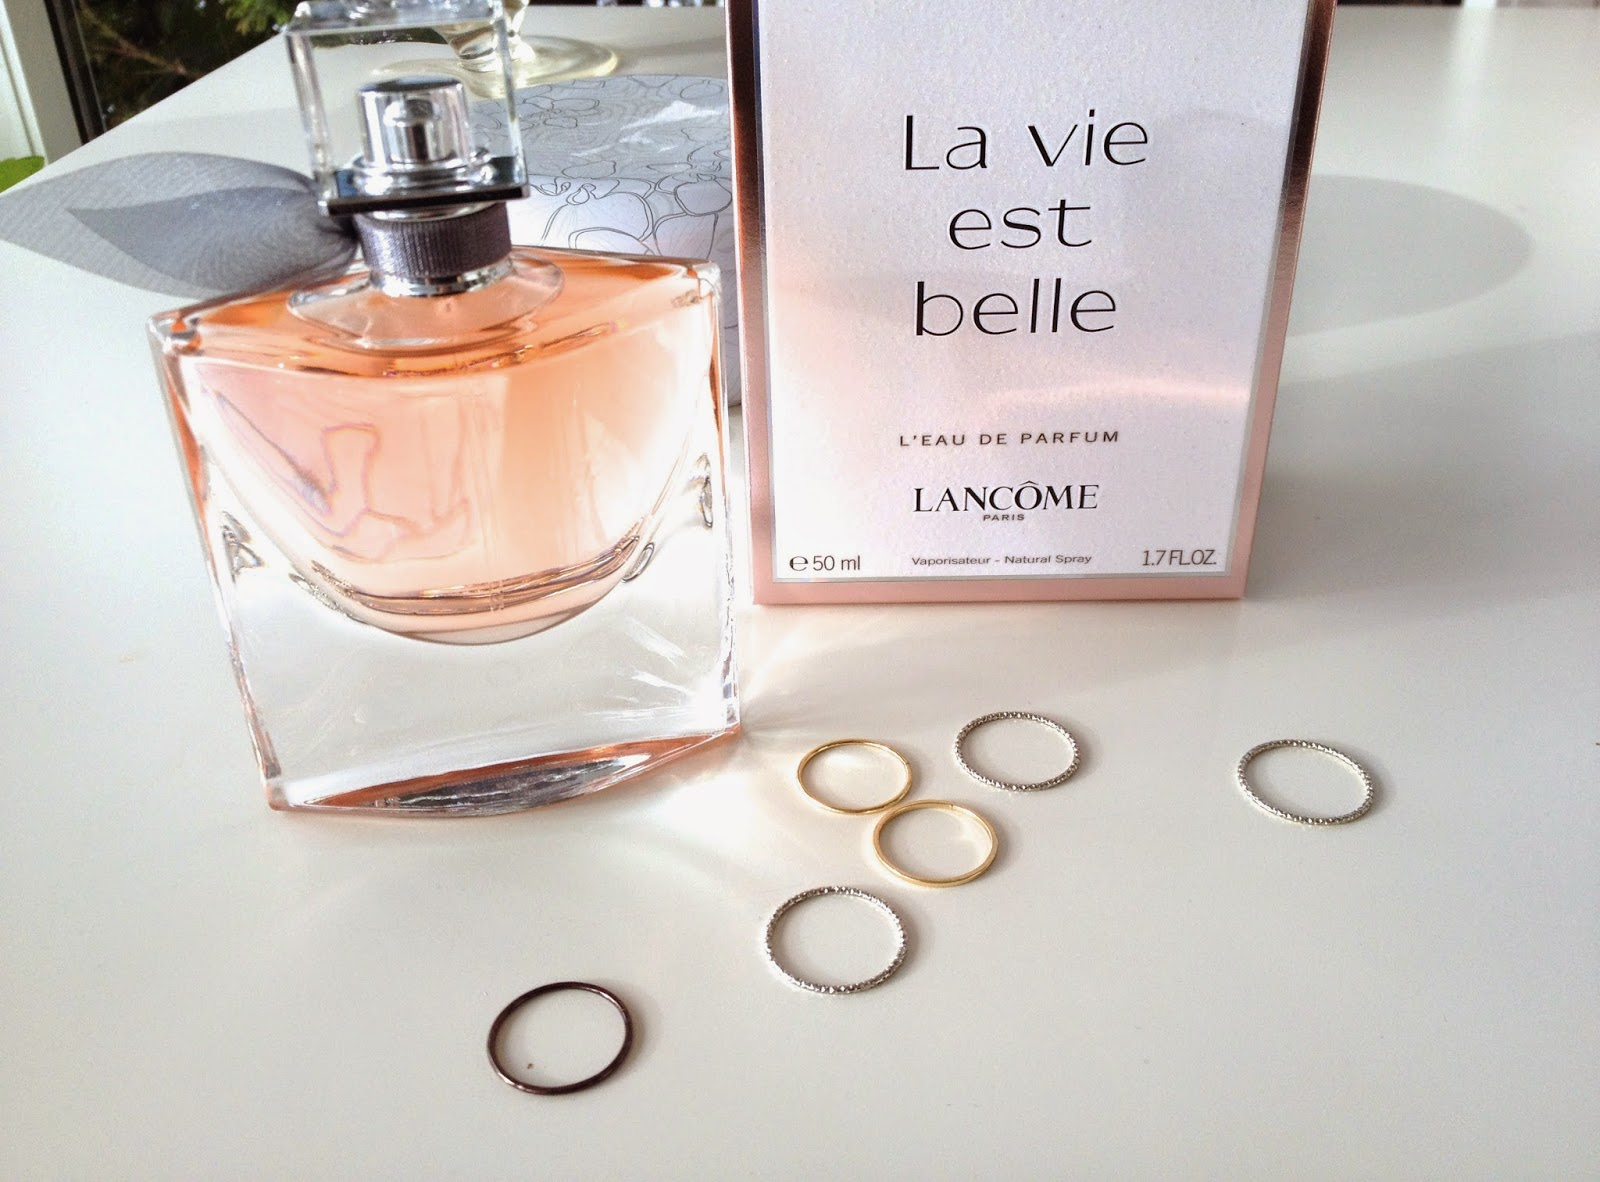 Vie Est Beauty La Belle ReviewChristine's Lancôme And Perfume FlK1cTJ